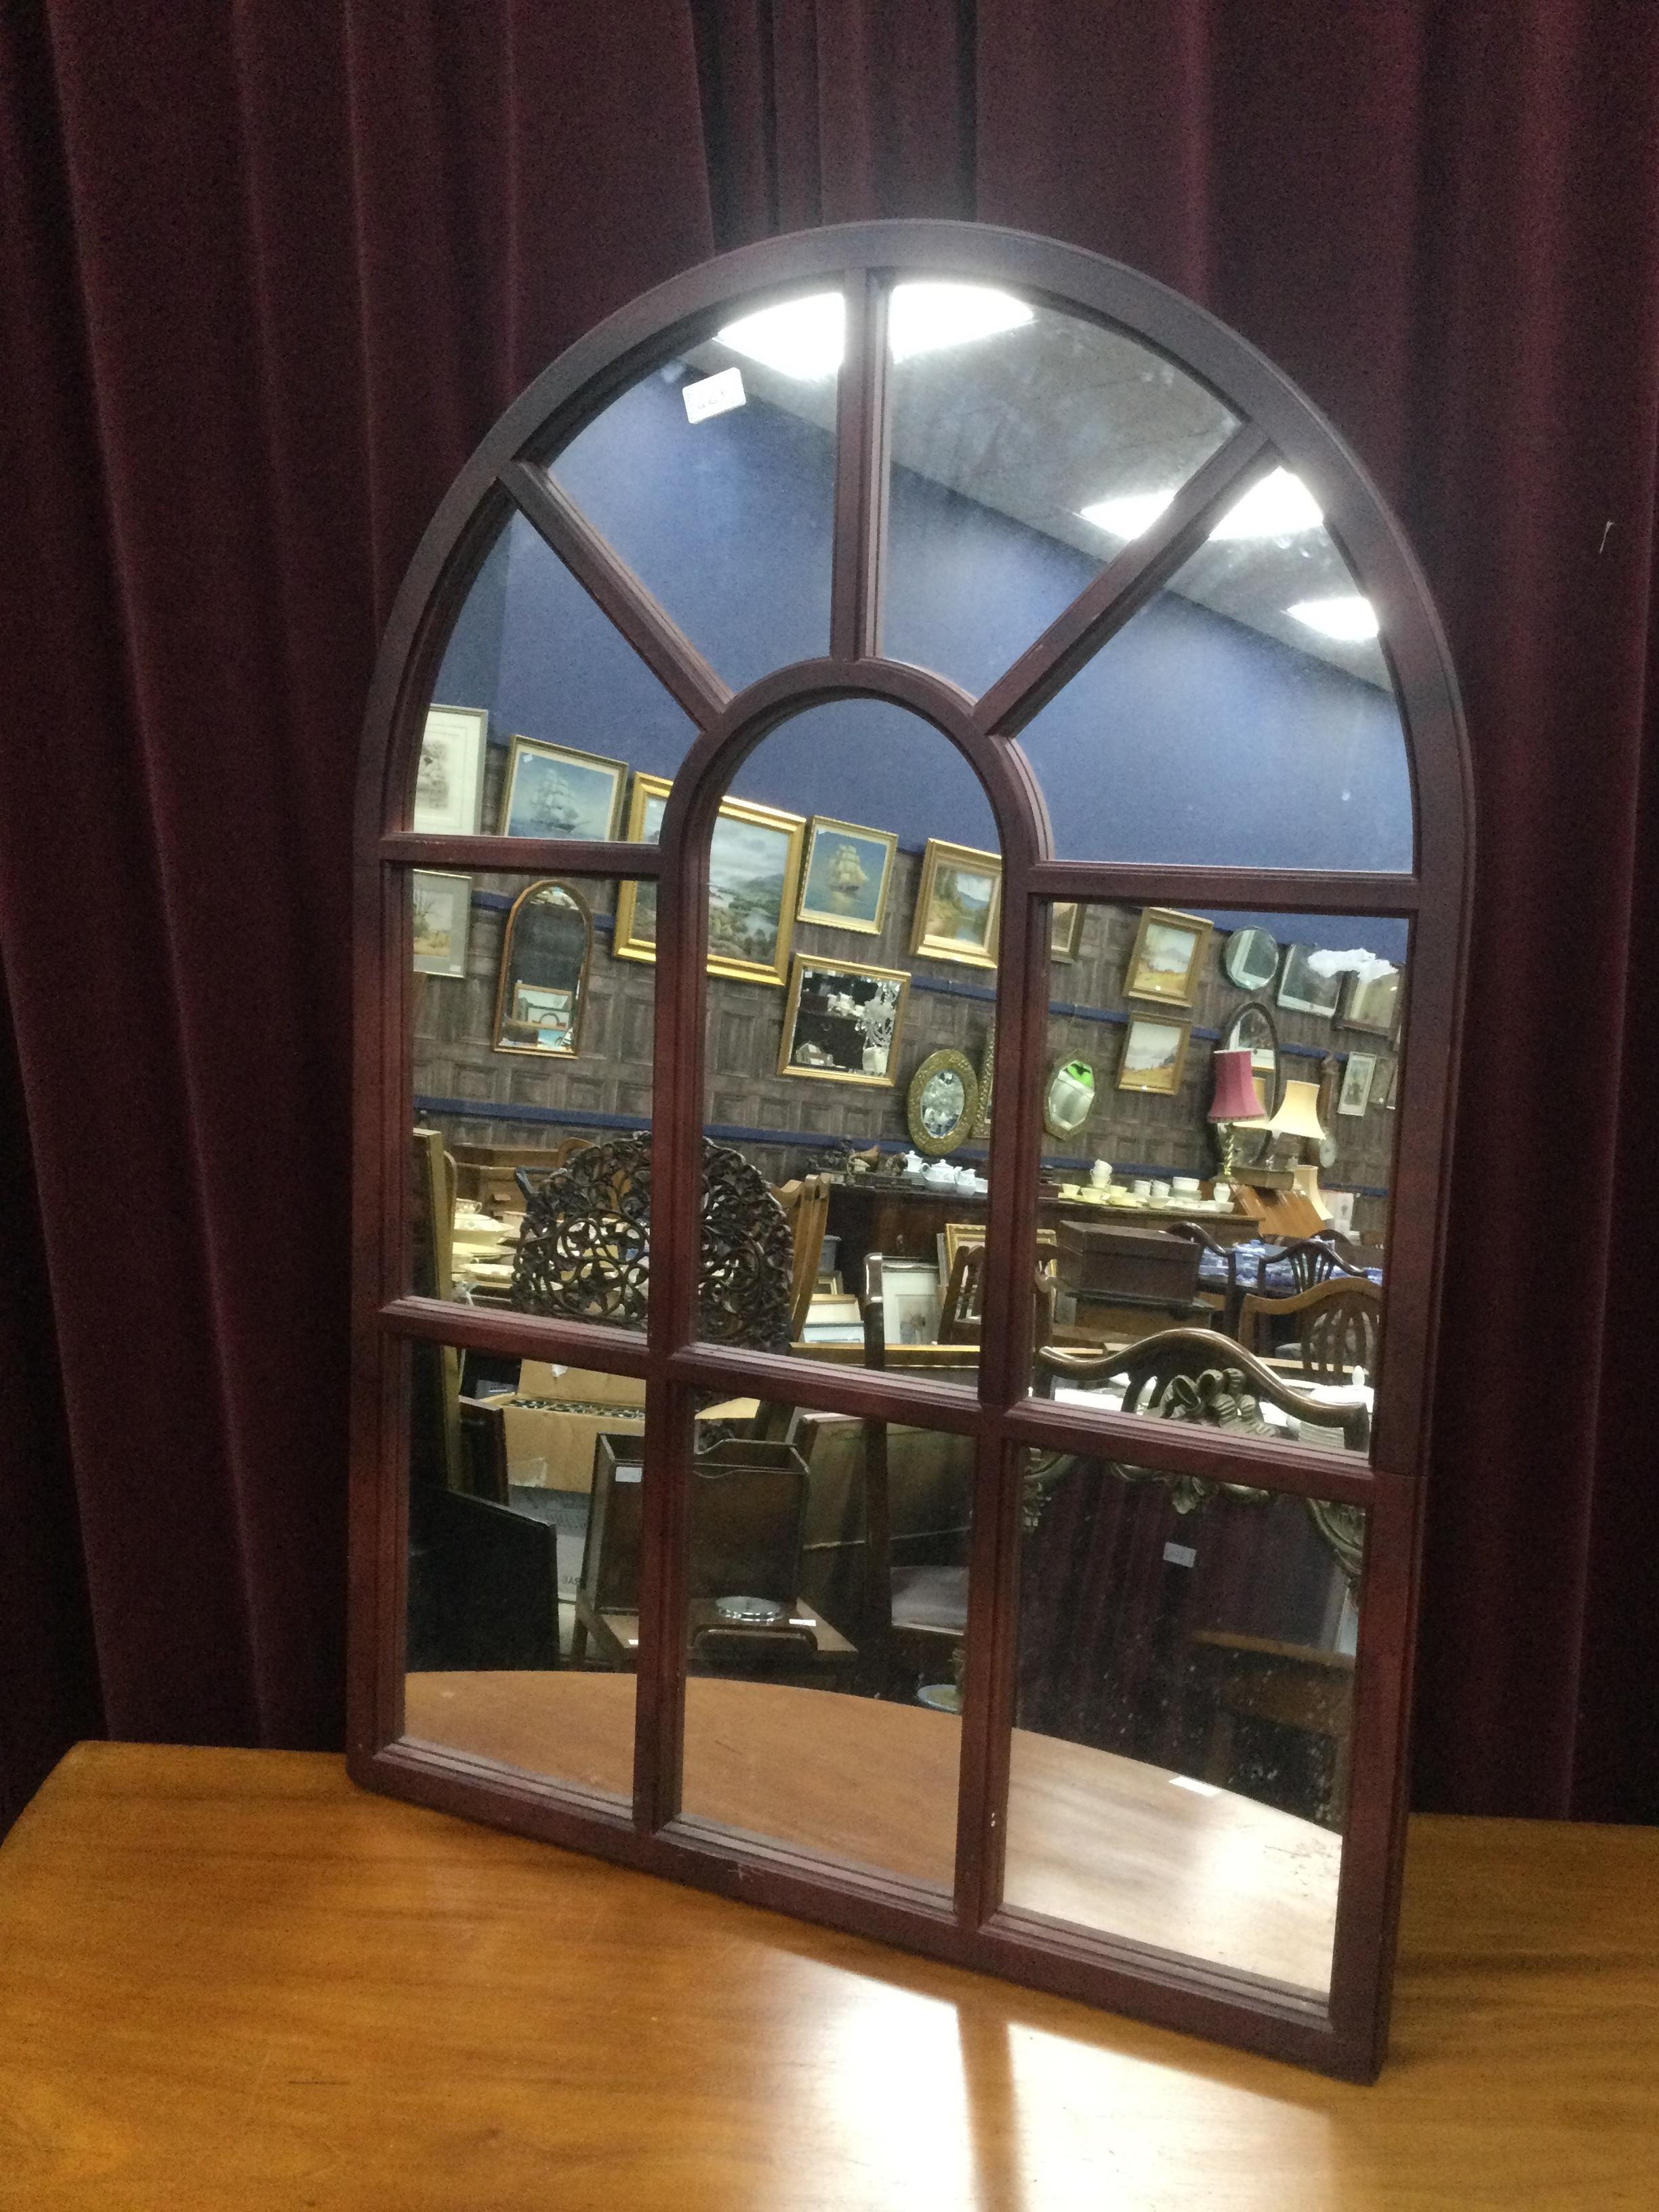 A VINTAGE ARCHED WALL MIRROR AND A BAISE LINED BOX